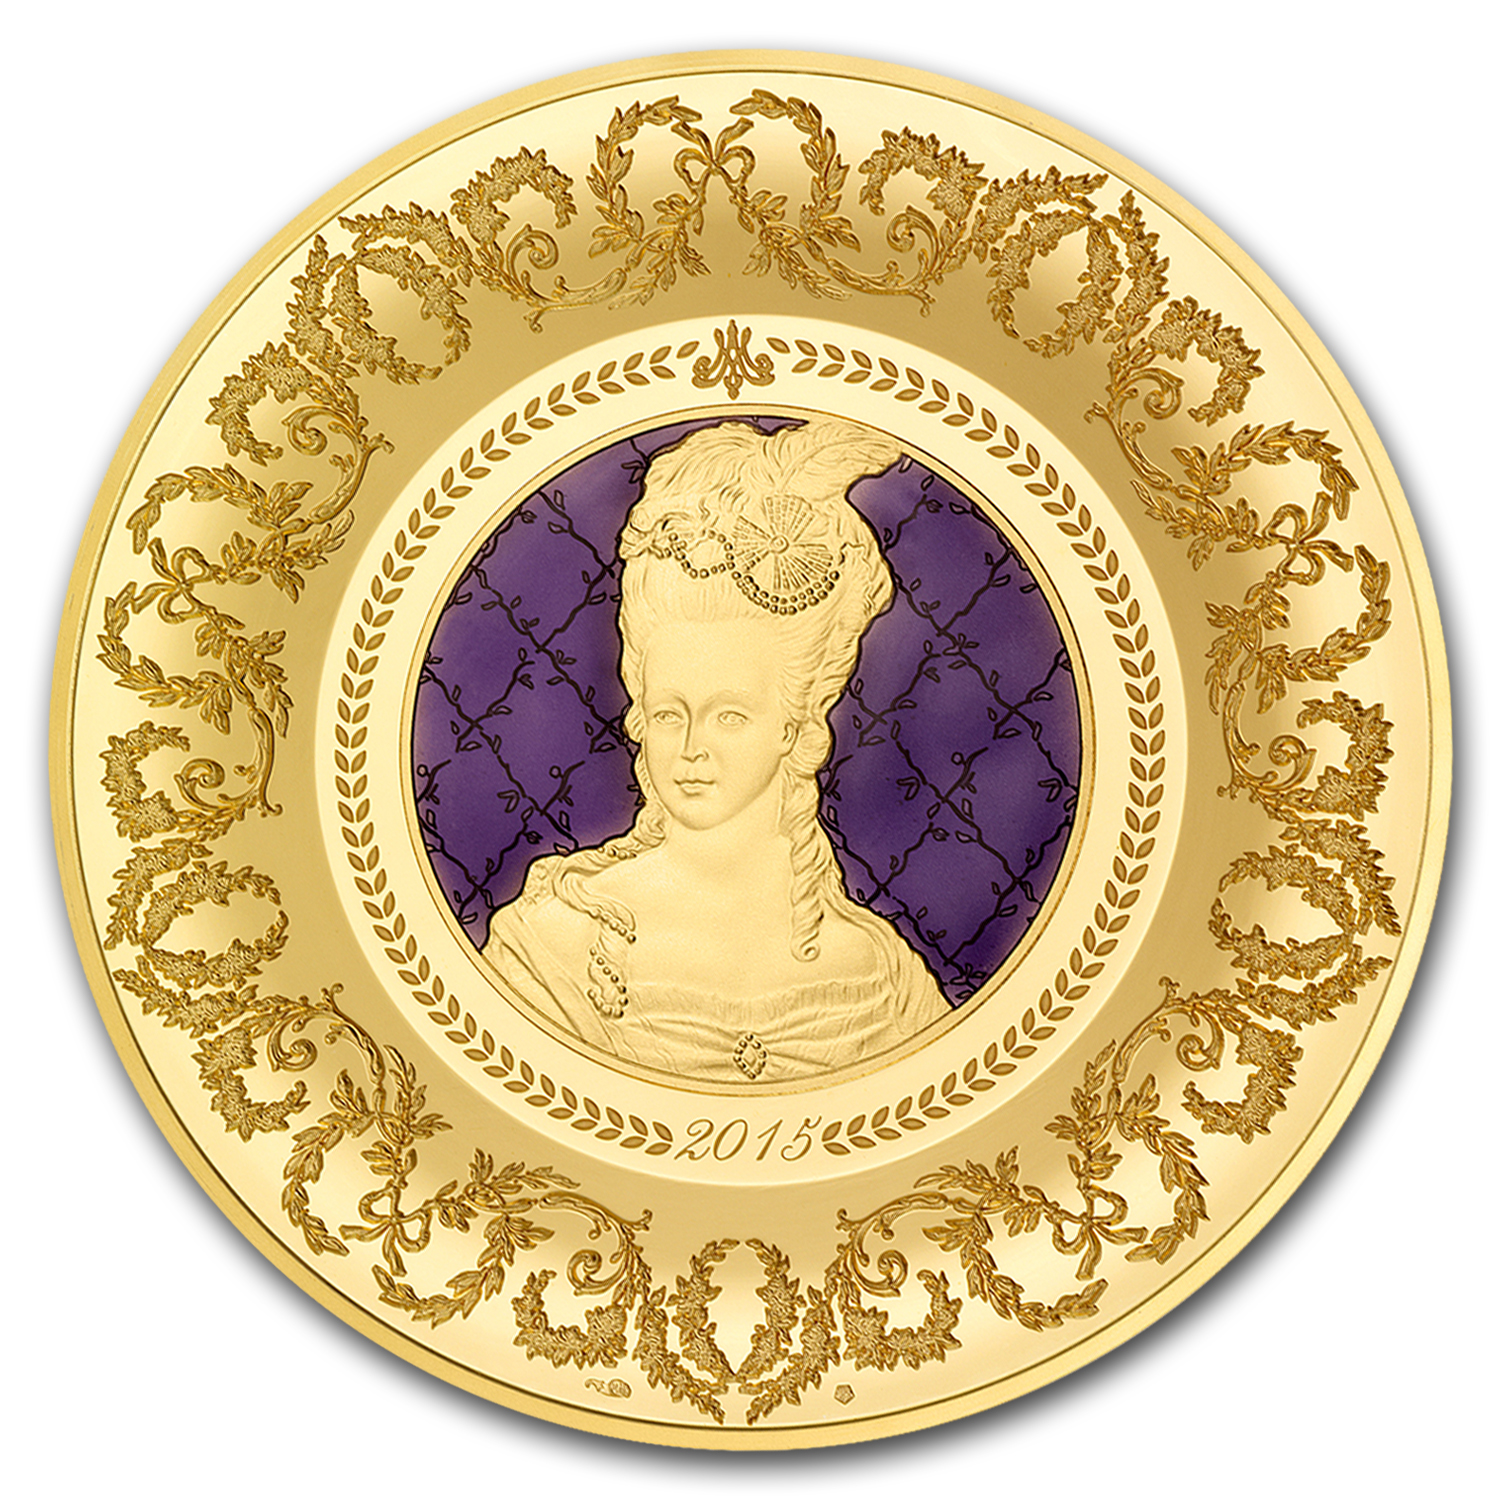 2015 5 oz Proof Gold €500 Excellence Series